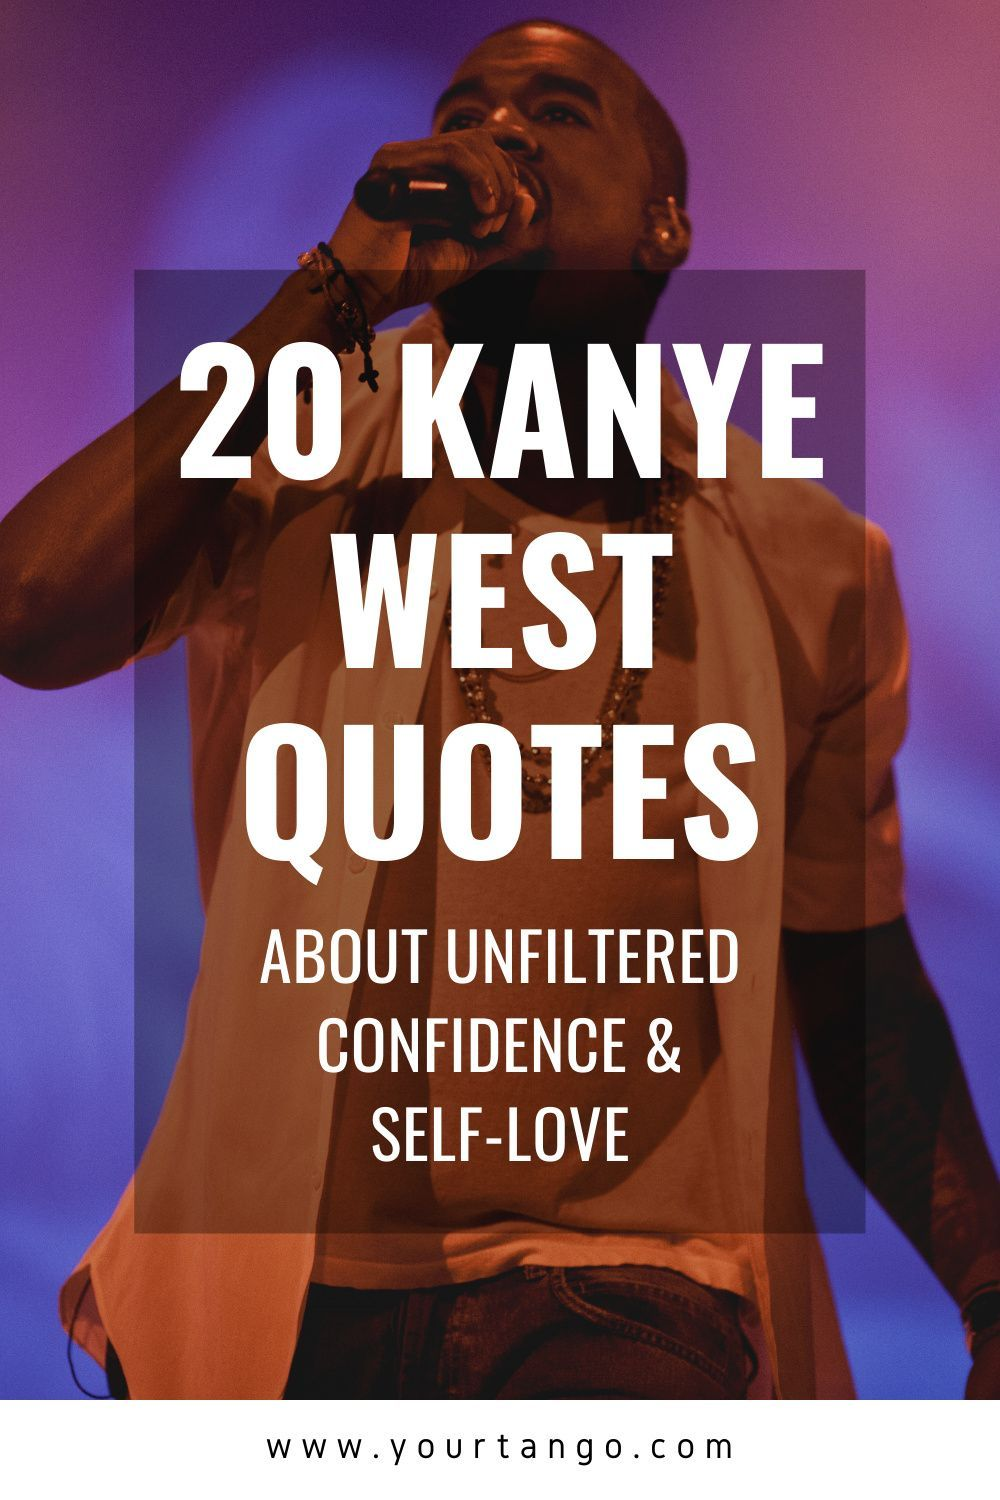 40 Best Kanye West Song Lyrics Rap Lines From His Best Albums In 2020 Kanye West Quotes Best Kanye Lyrics Kanye West Songs